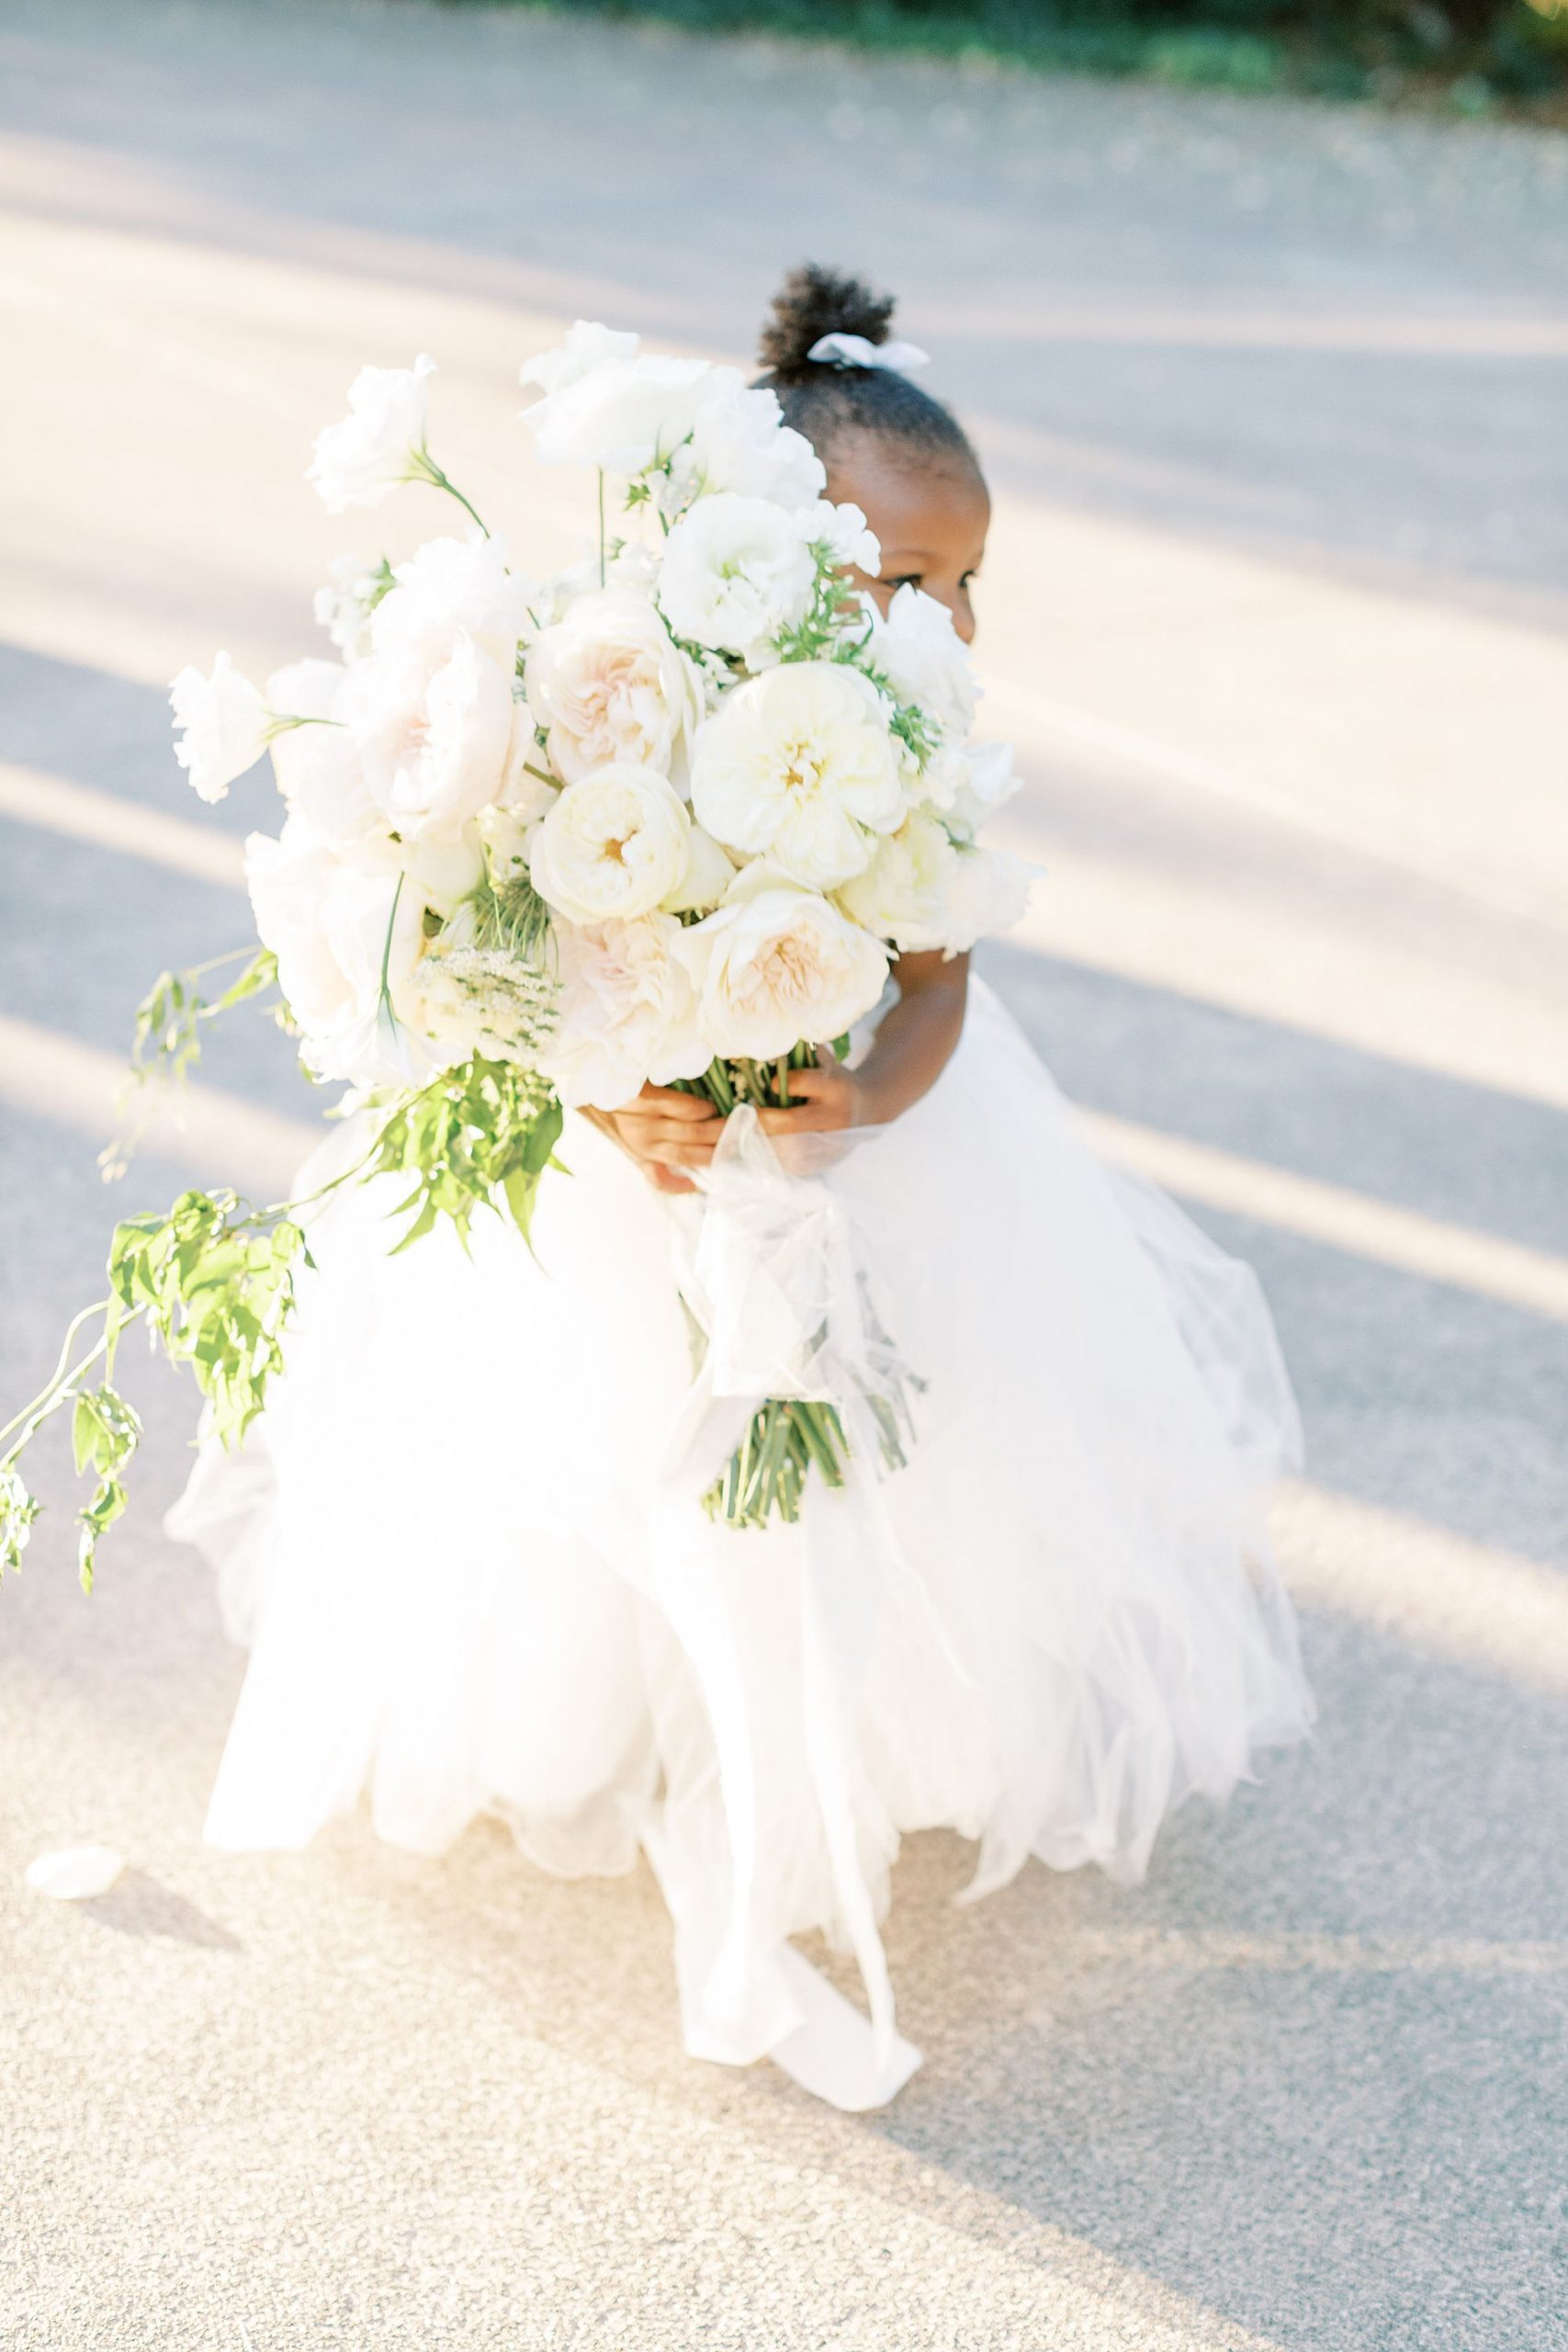 Park Winters Micro-Wedding Inspiration on Style Me Pretty - Stephanie Teague Events - Ashley Baumgartner - Park Winters Wedding - Black Tie Wedding - Micro-Wedding Sacramento Photographer_0076.jpg